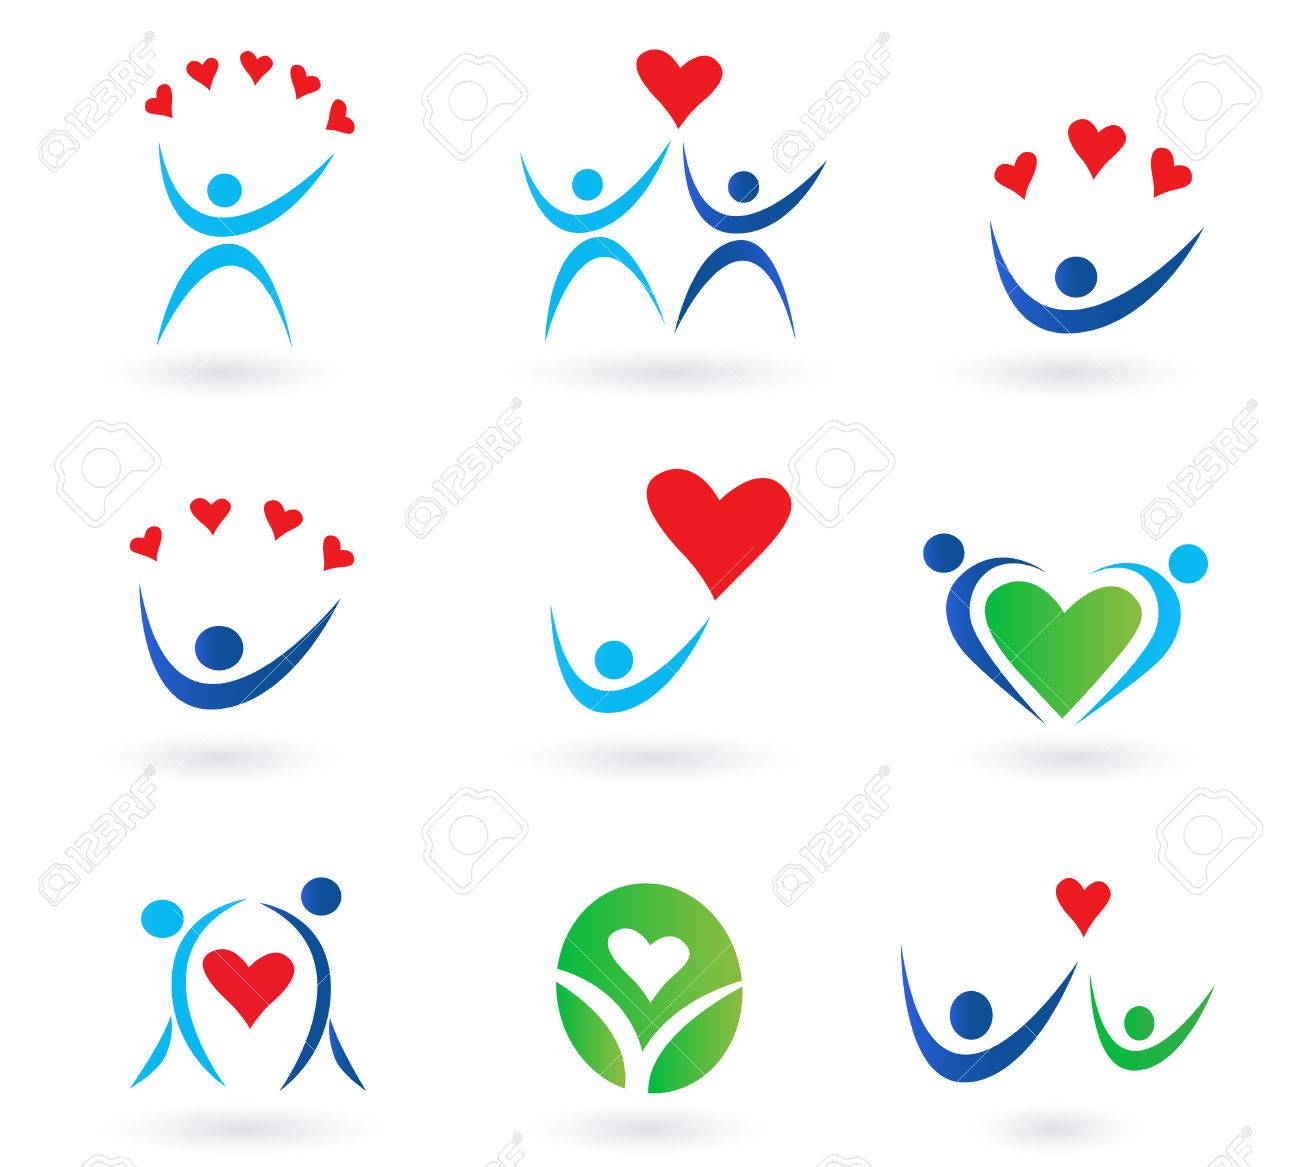 pack of love, relationship, community and family icons for websites and magazines. Stock Vector - 7317847